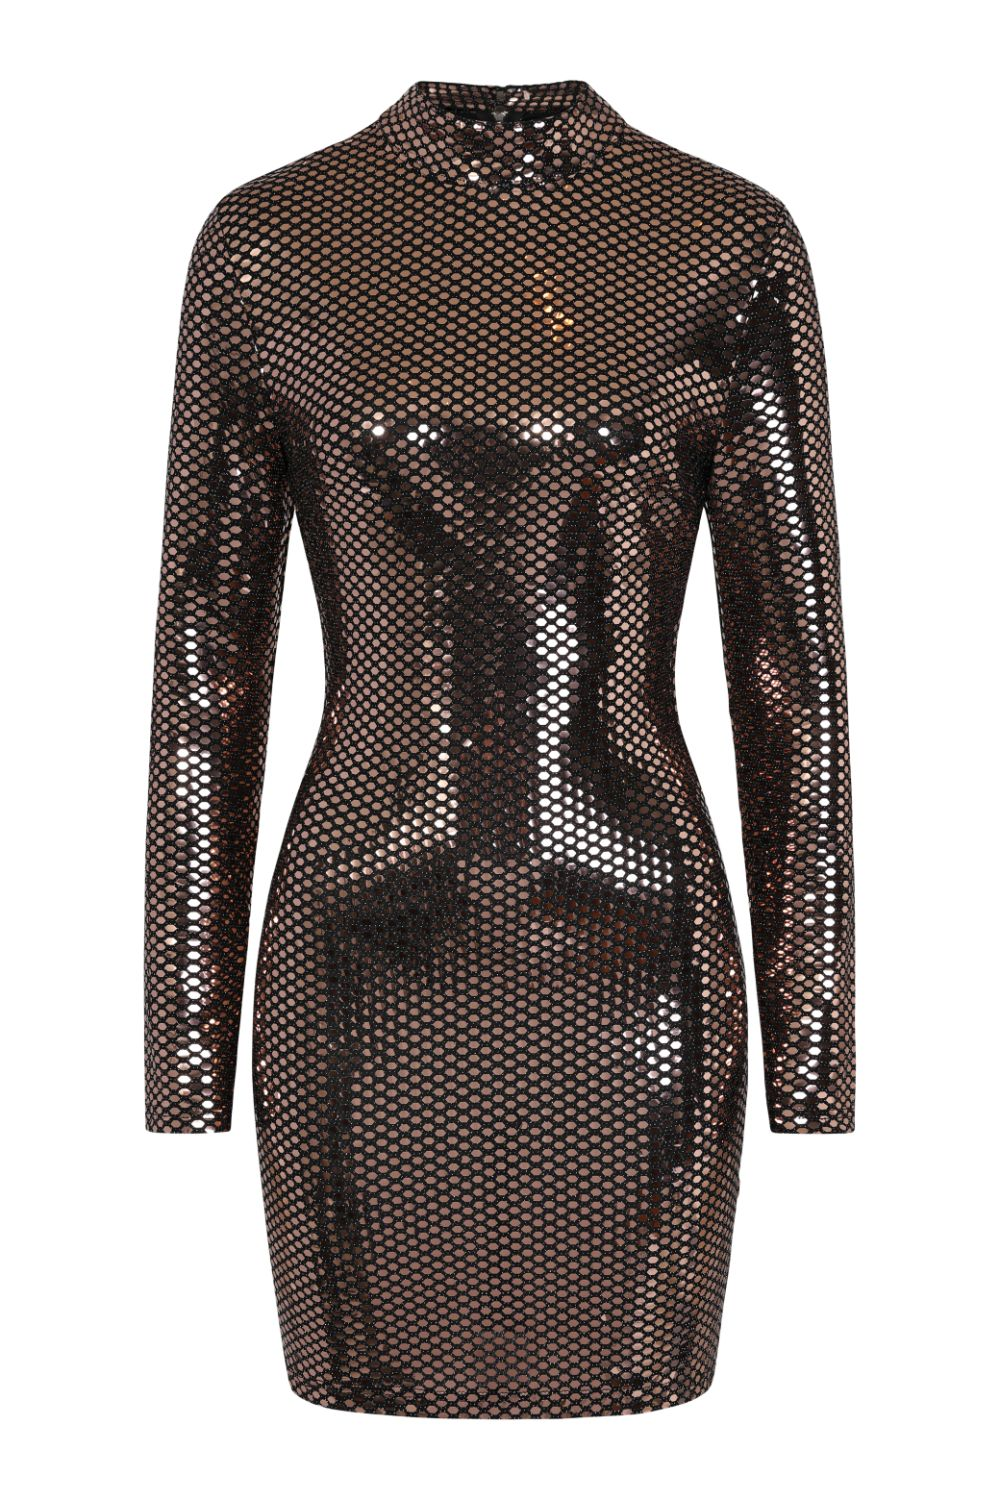 Hypnotised Bronze Metallic Mirrored Sequin Bodycon Dress